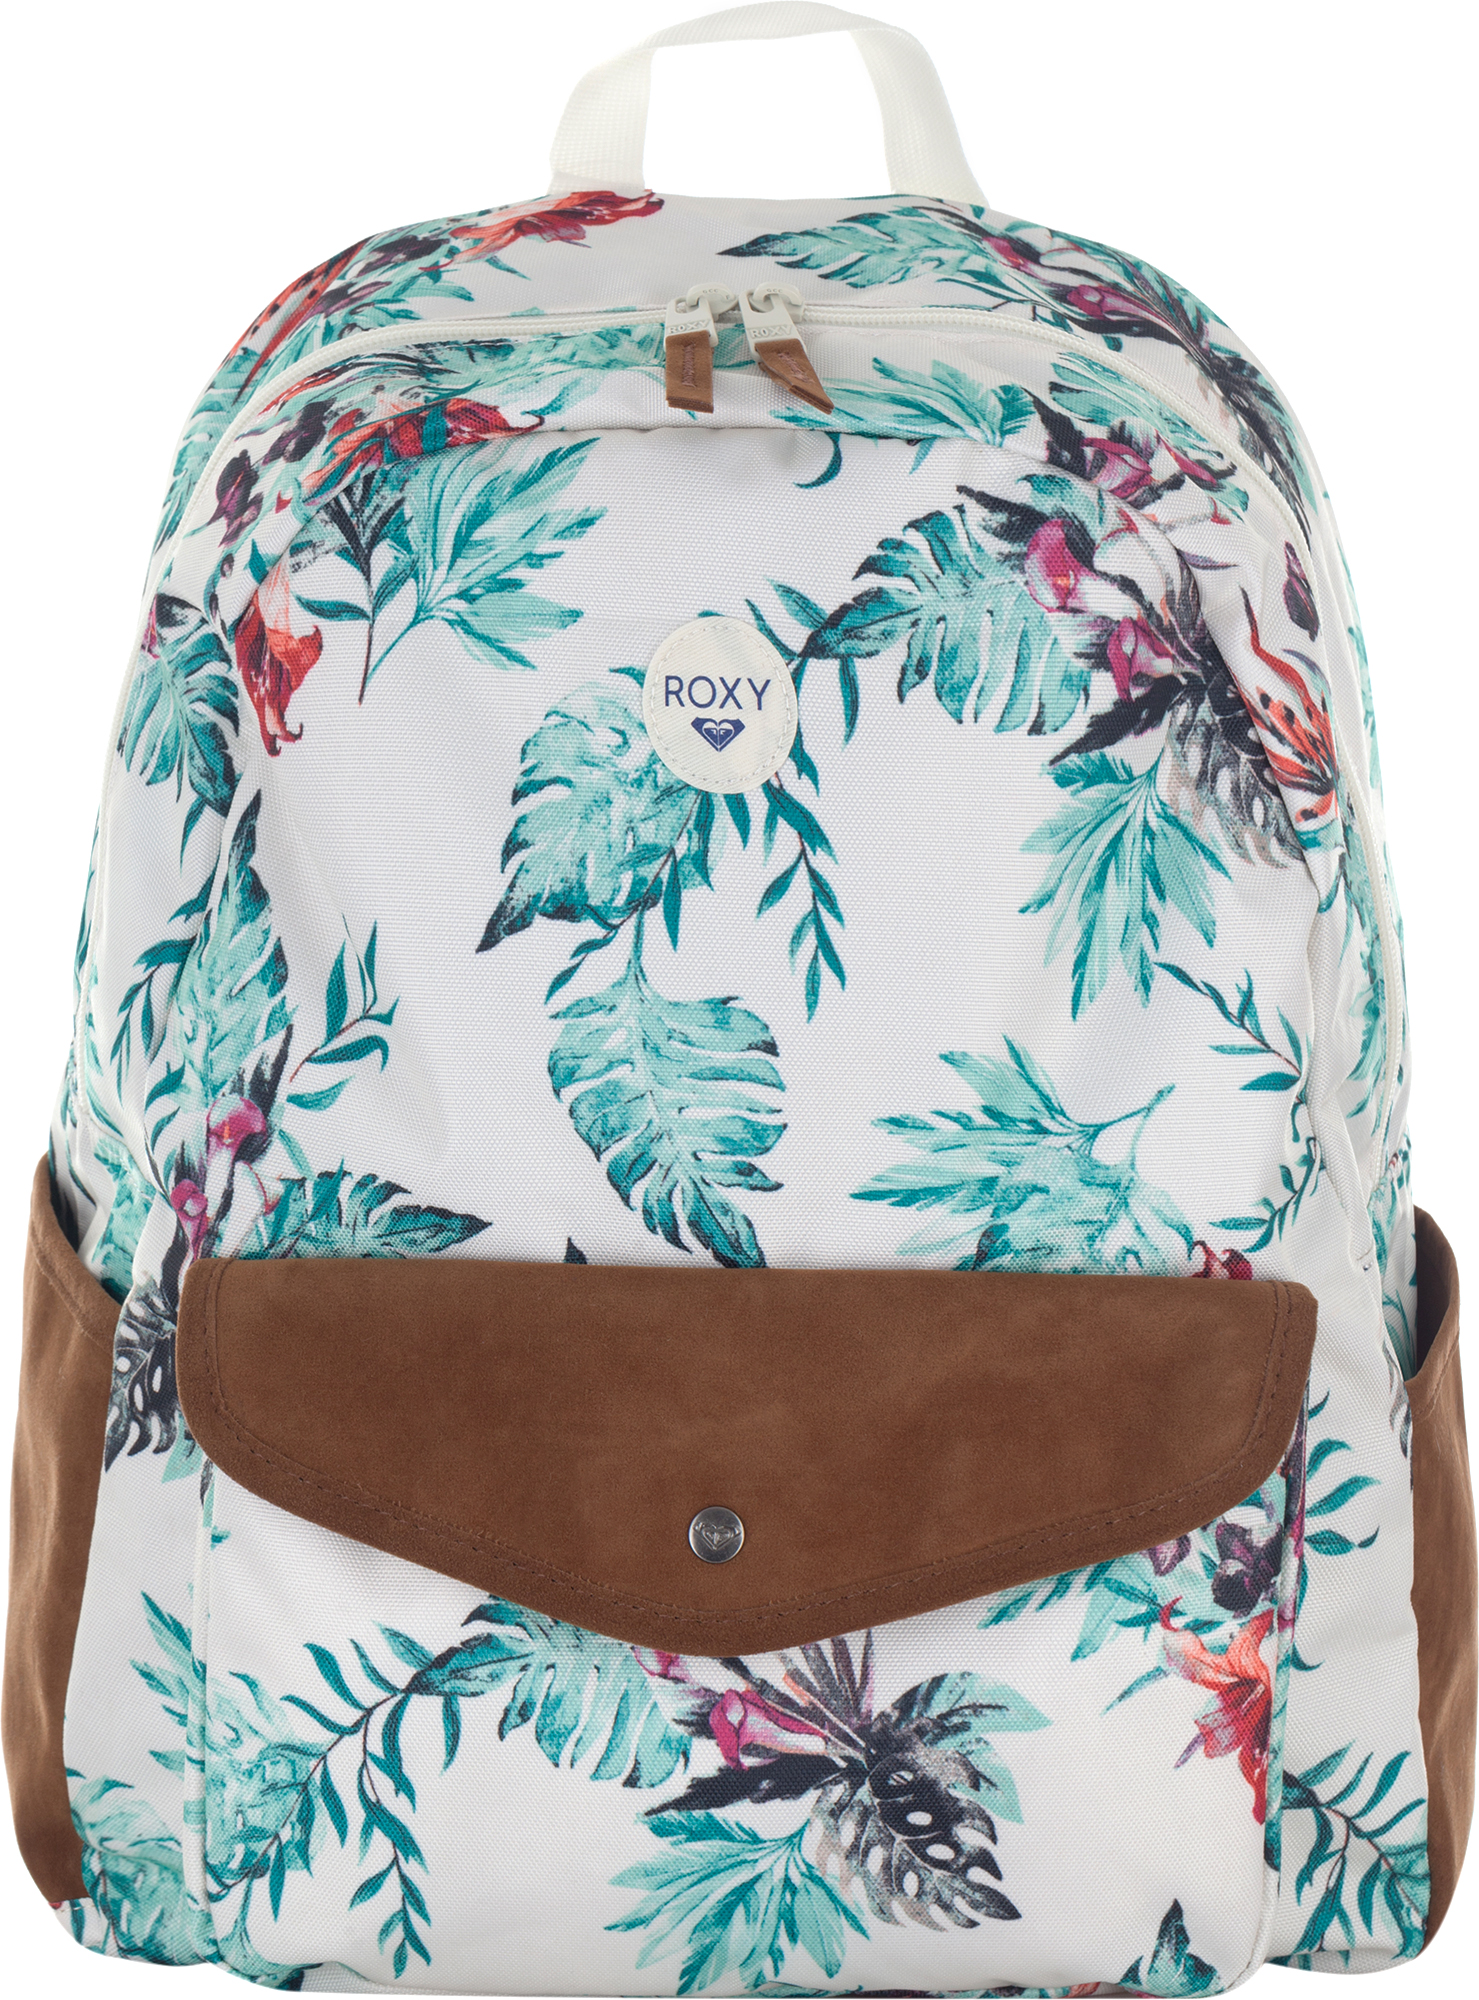 Roxy Рюкзак женский Roxy Convey Backpack S